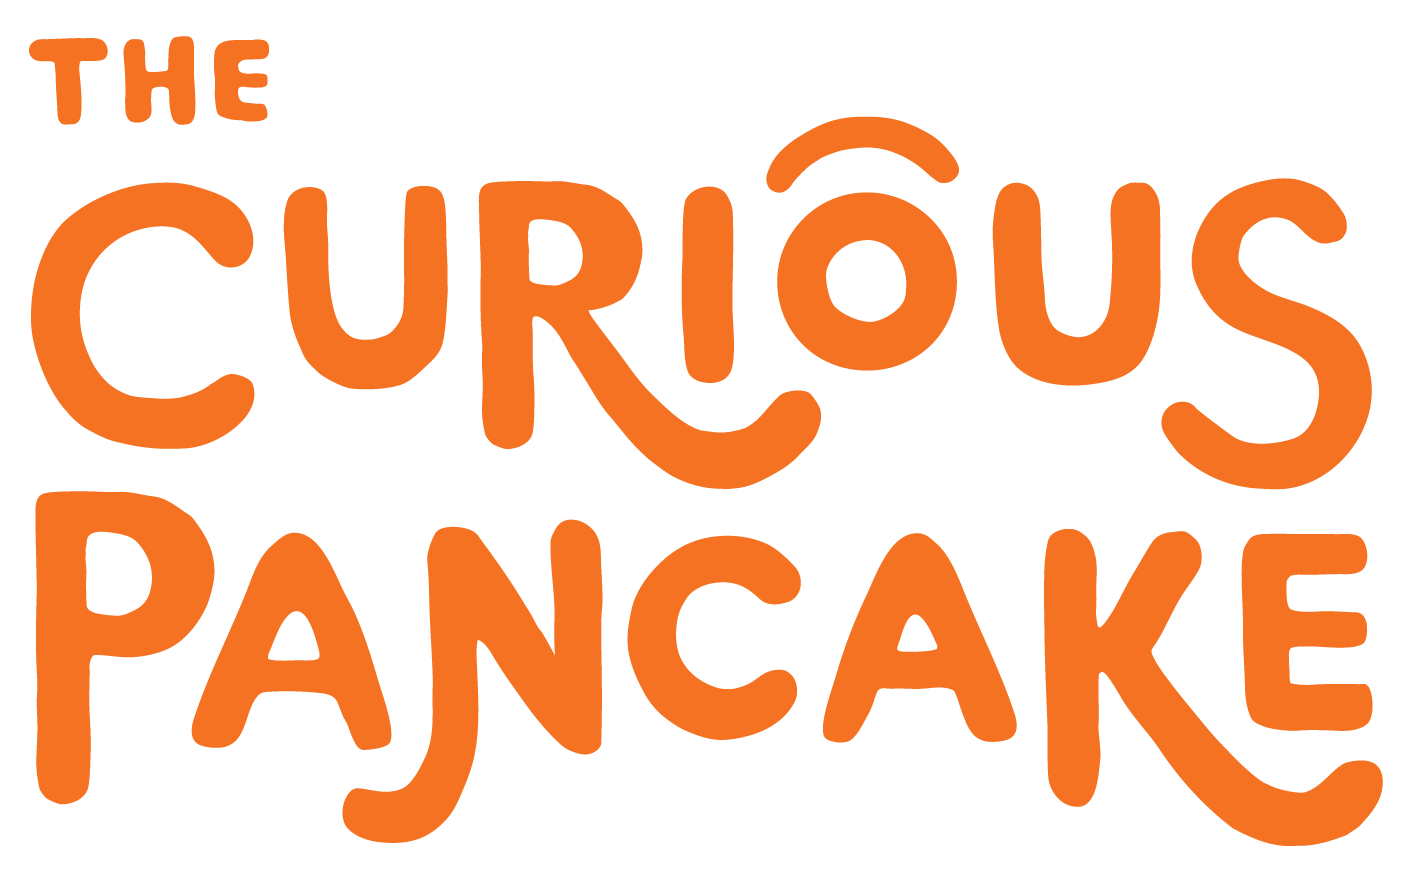 Read The Curious Pancake Reviews